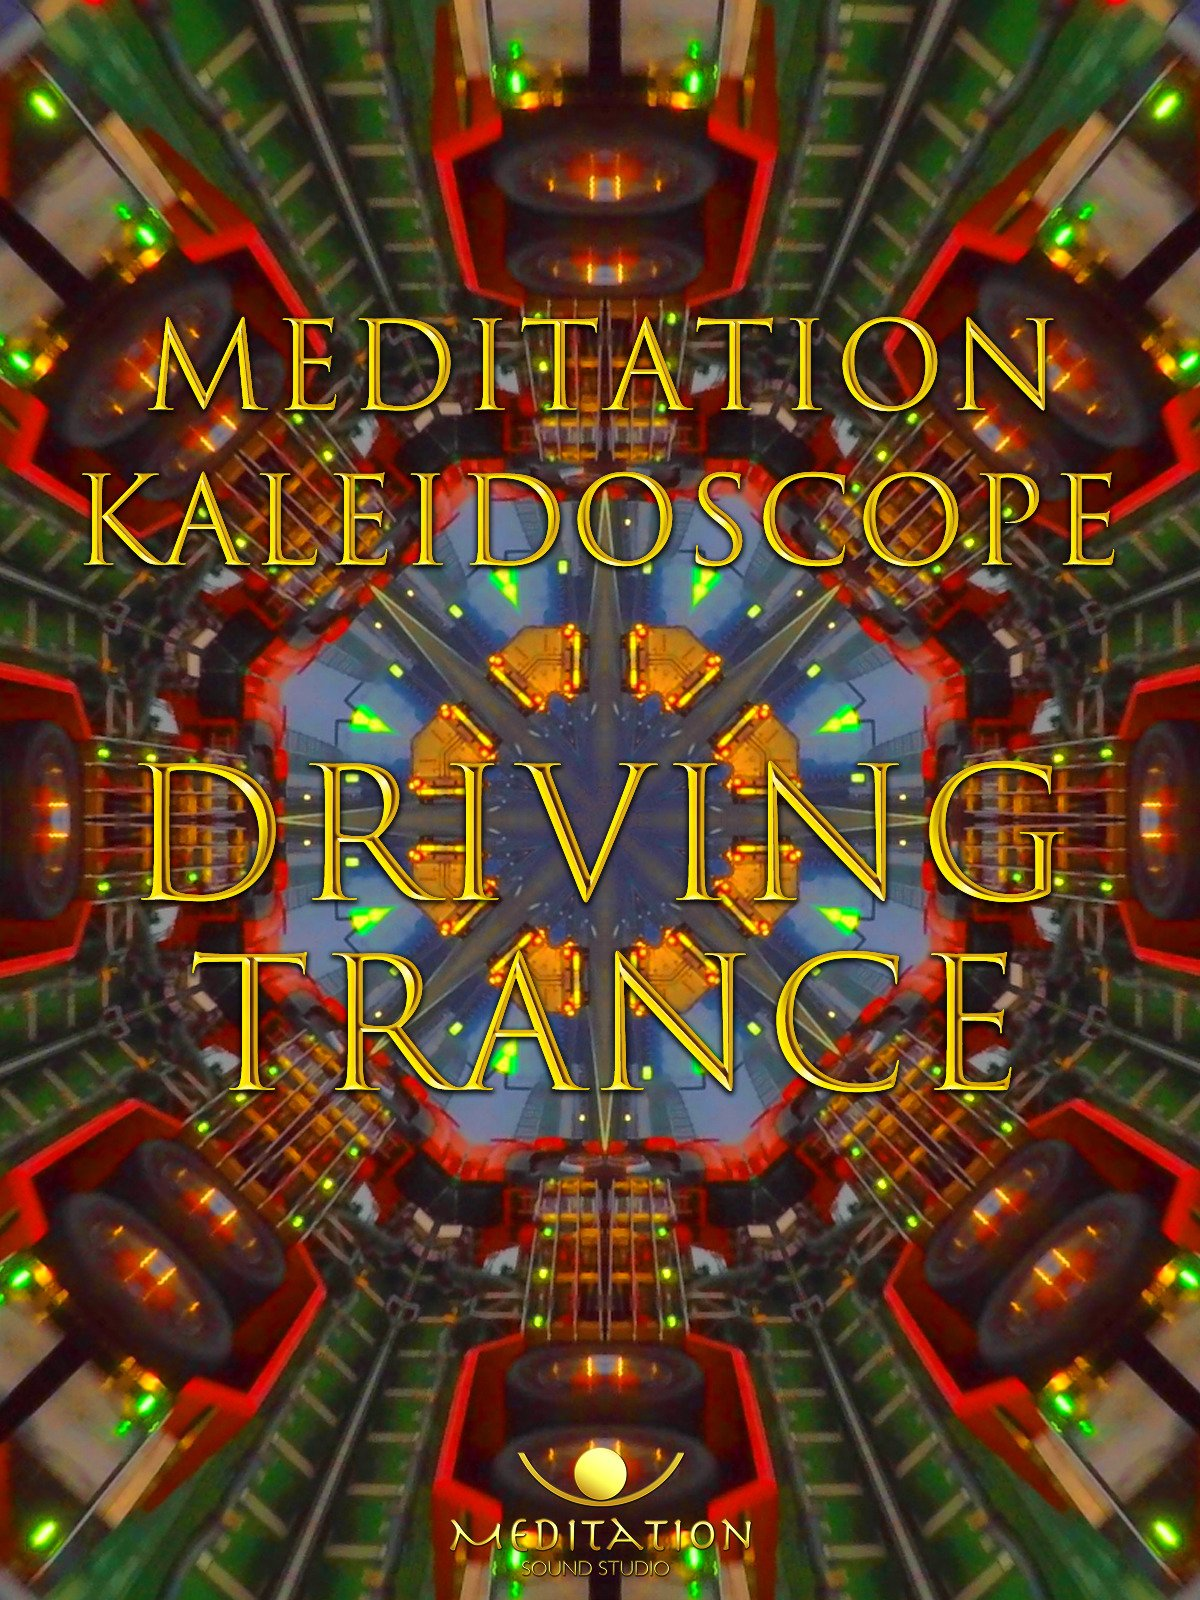 meditation sound studio kaleidoscope driving trance on Amazon Prime Instant Video UK